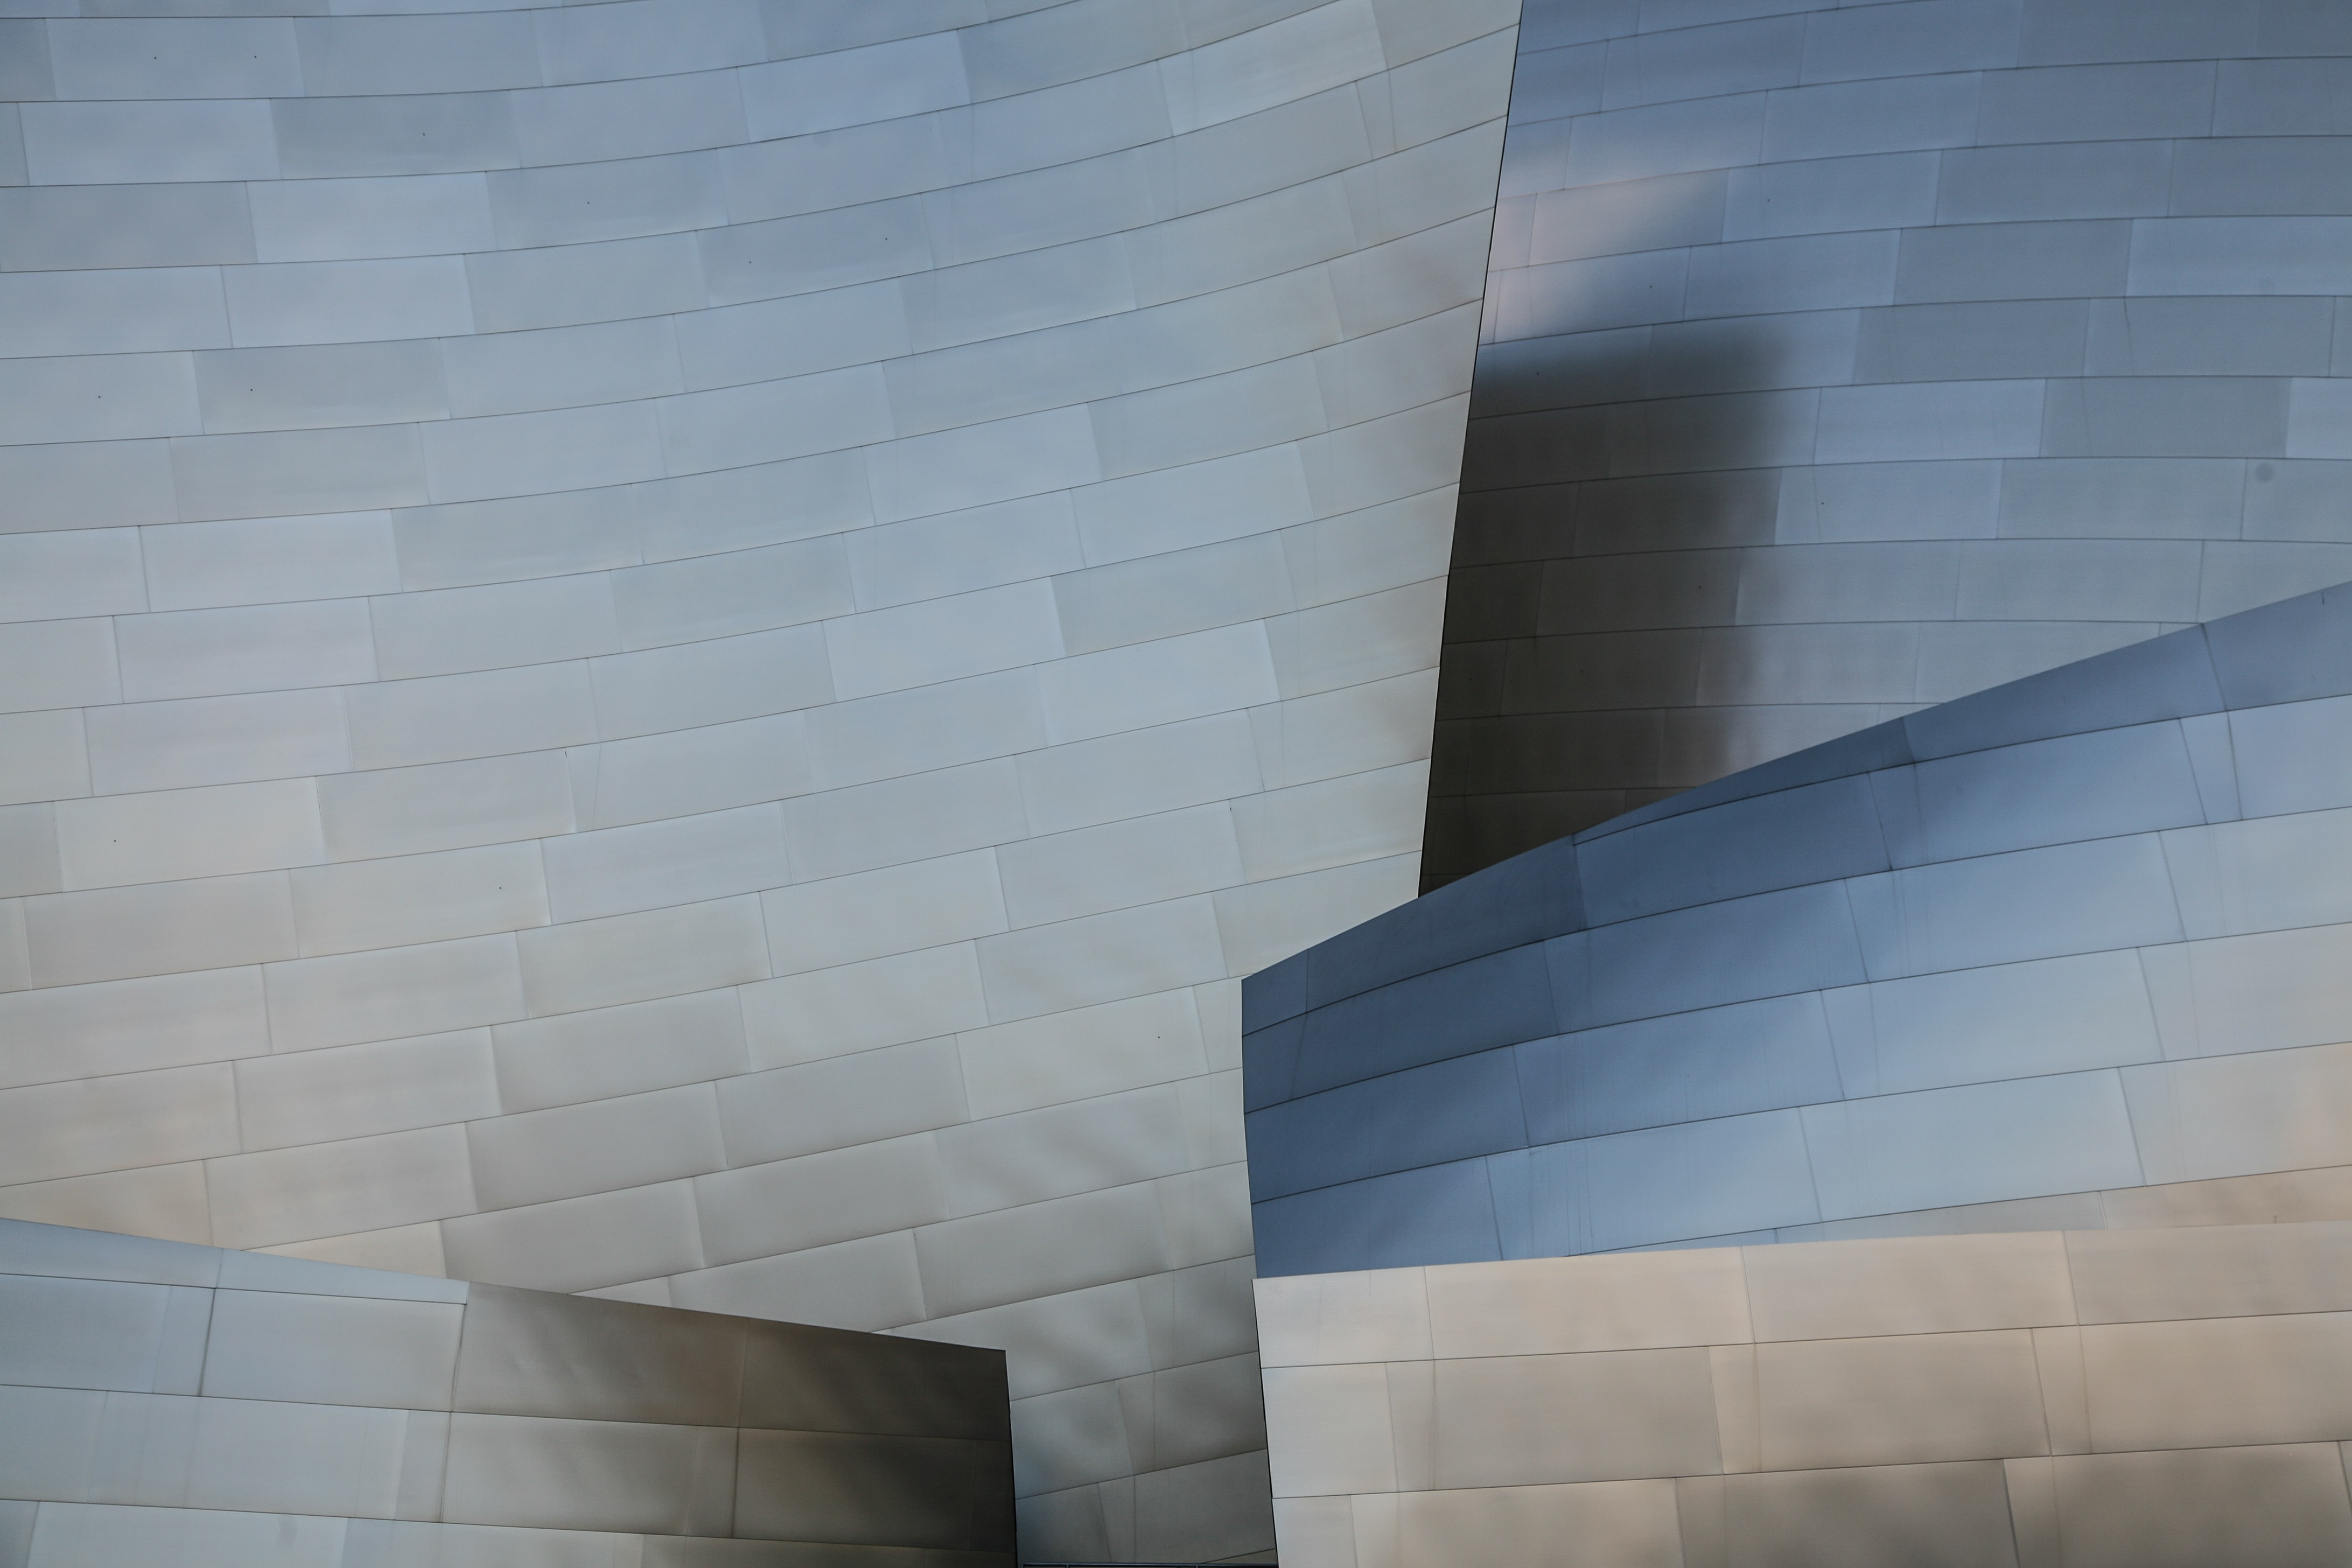 Glossy steel panels in the modern facade of Walt Disney Concert Hall in Los Angeles